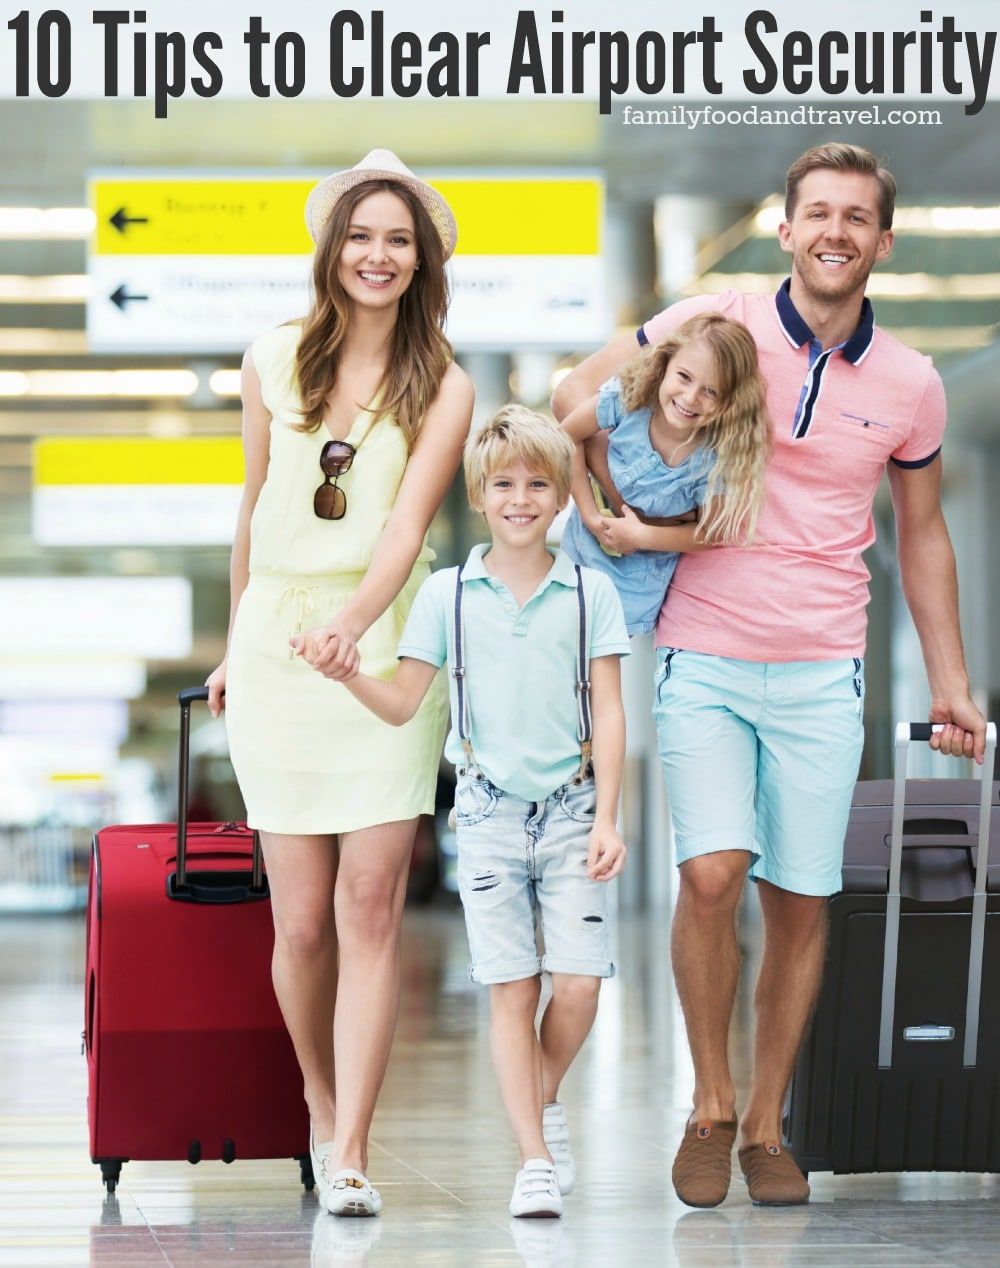 10 Tips to Clear Airport Security